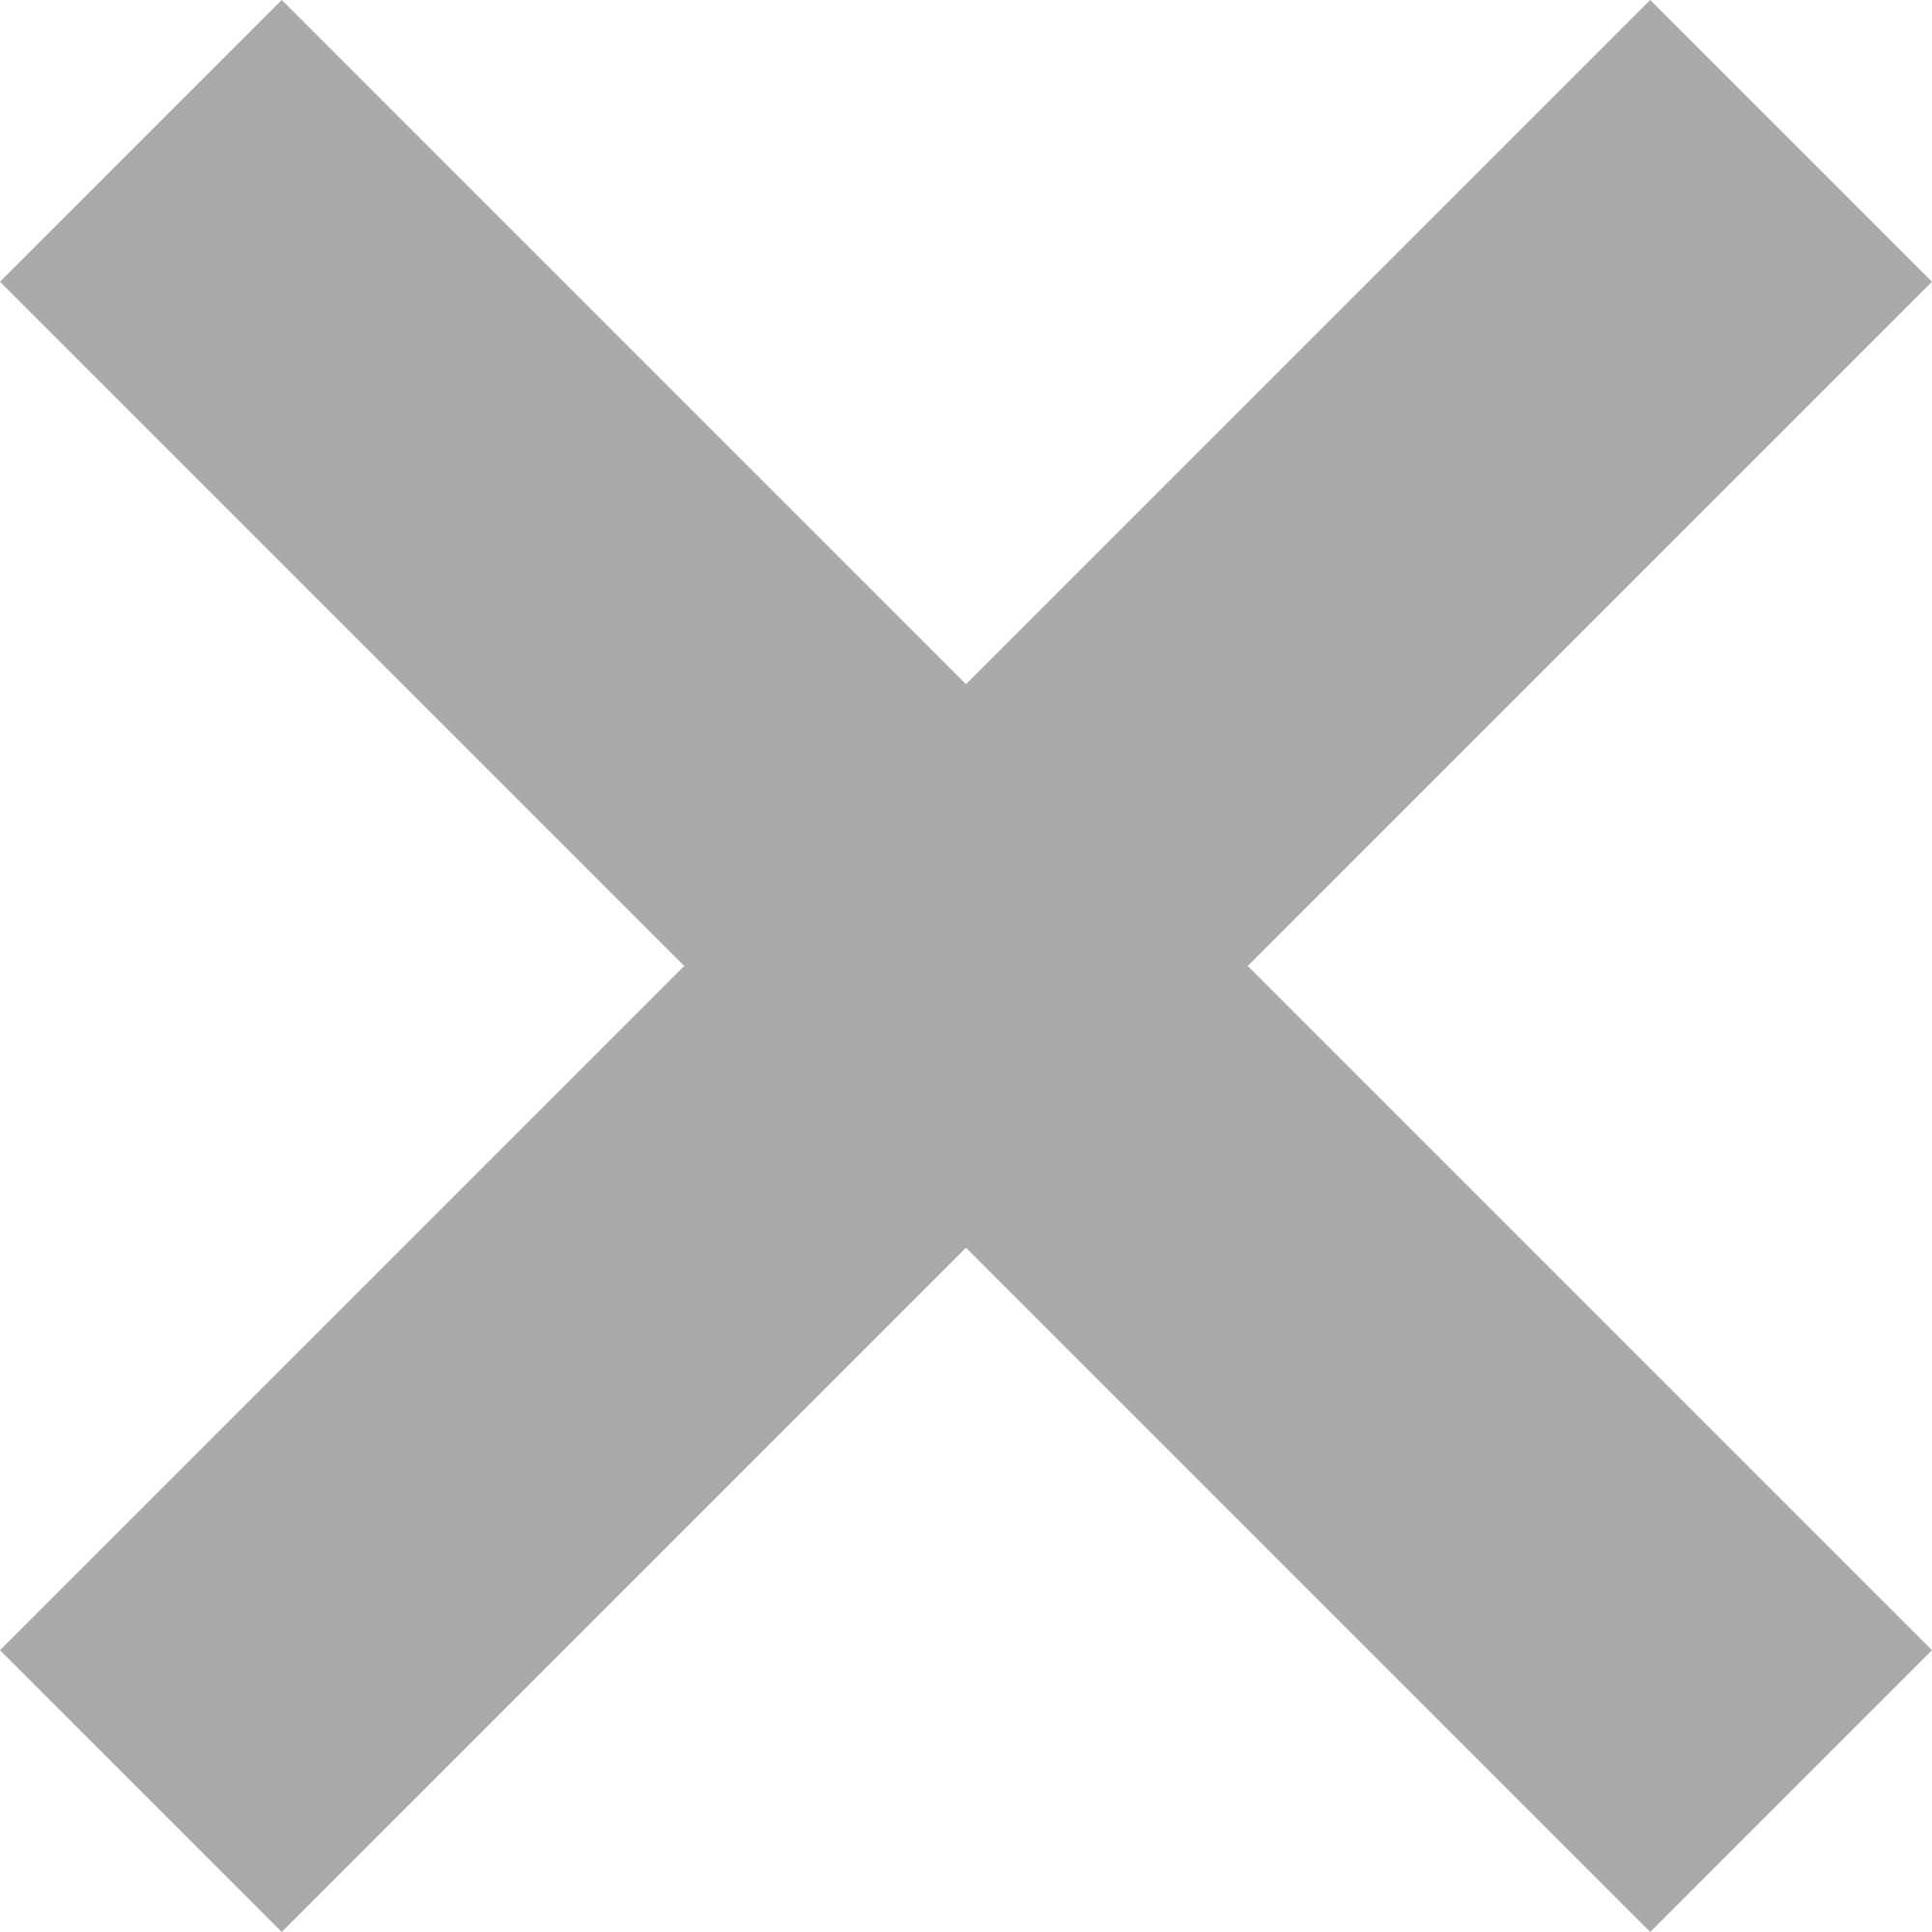 White letter x png. Dr odd here are